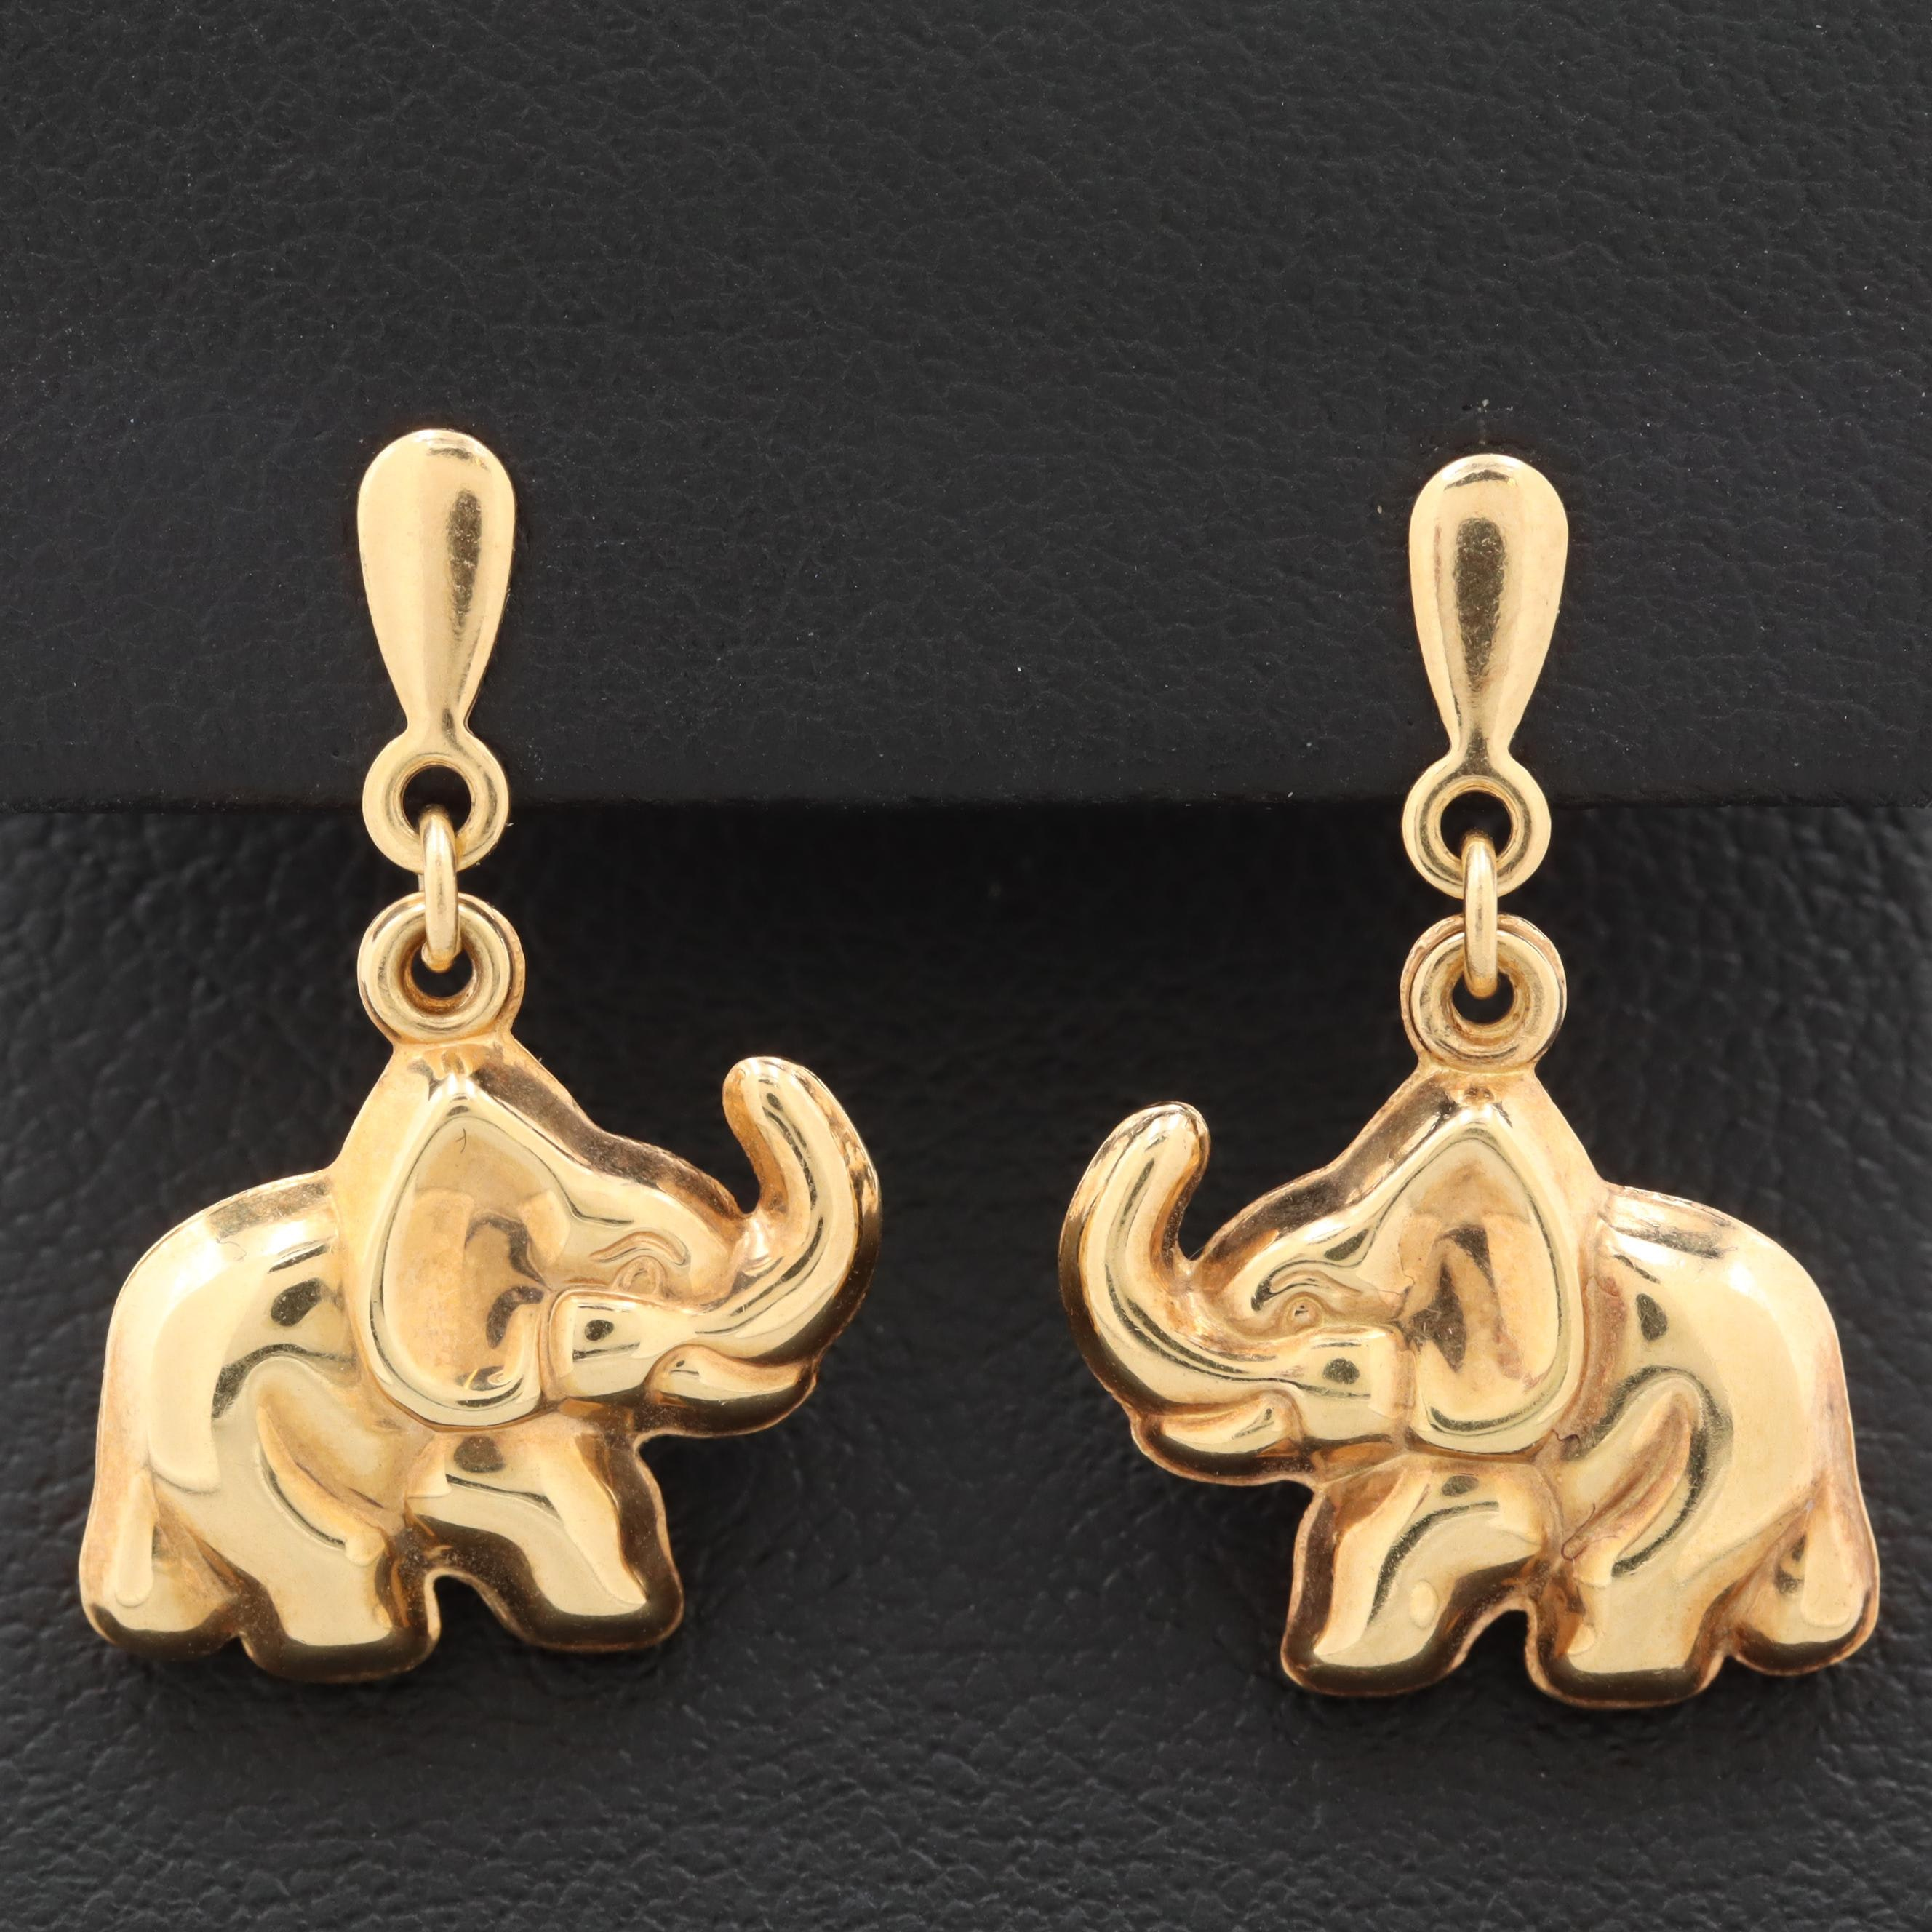 Milor 18K Yellow Gold Elephant Earrings